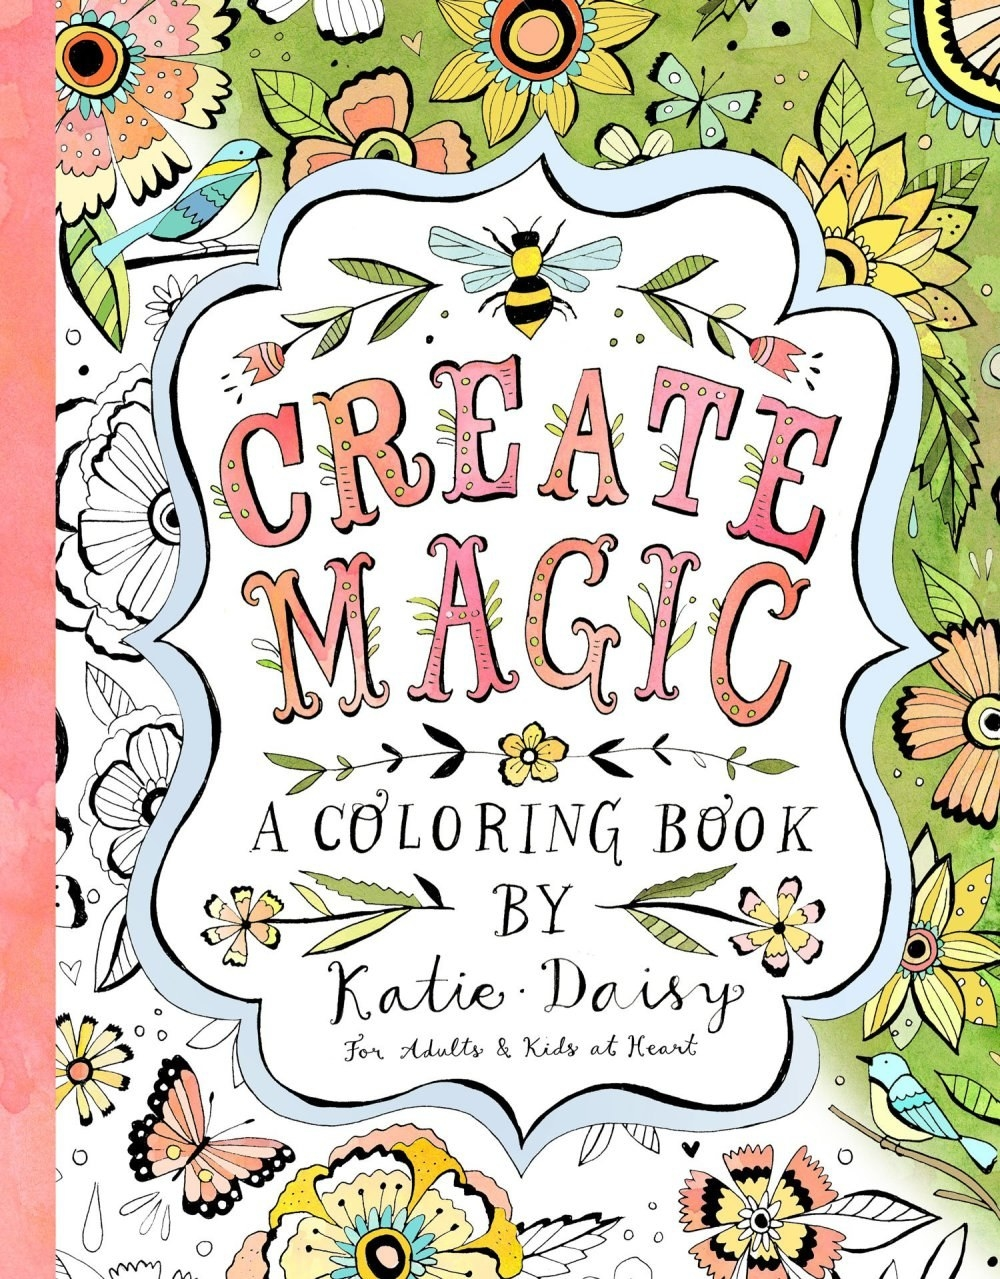 Adult Coloring Books Buzzfeed : adult, coloring, books, buzzfeed, Awesome, Coloring, Books, You'll, Start, Using